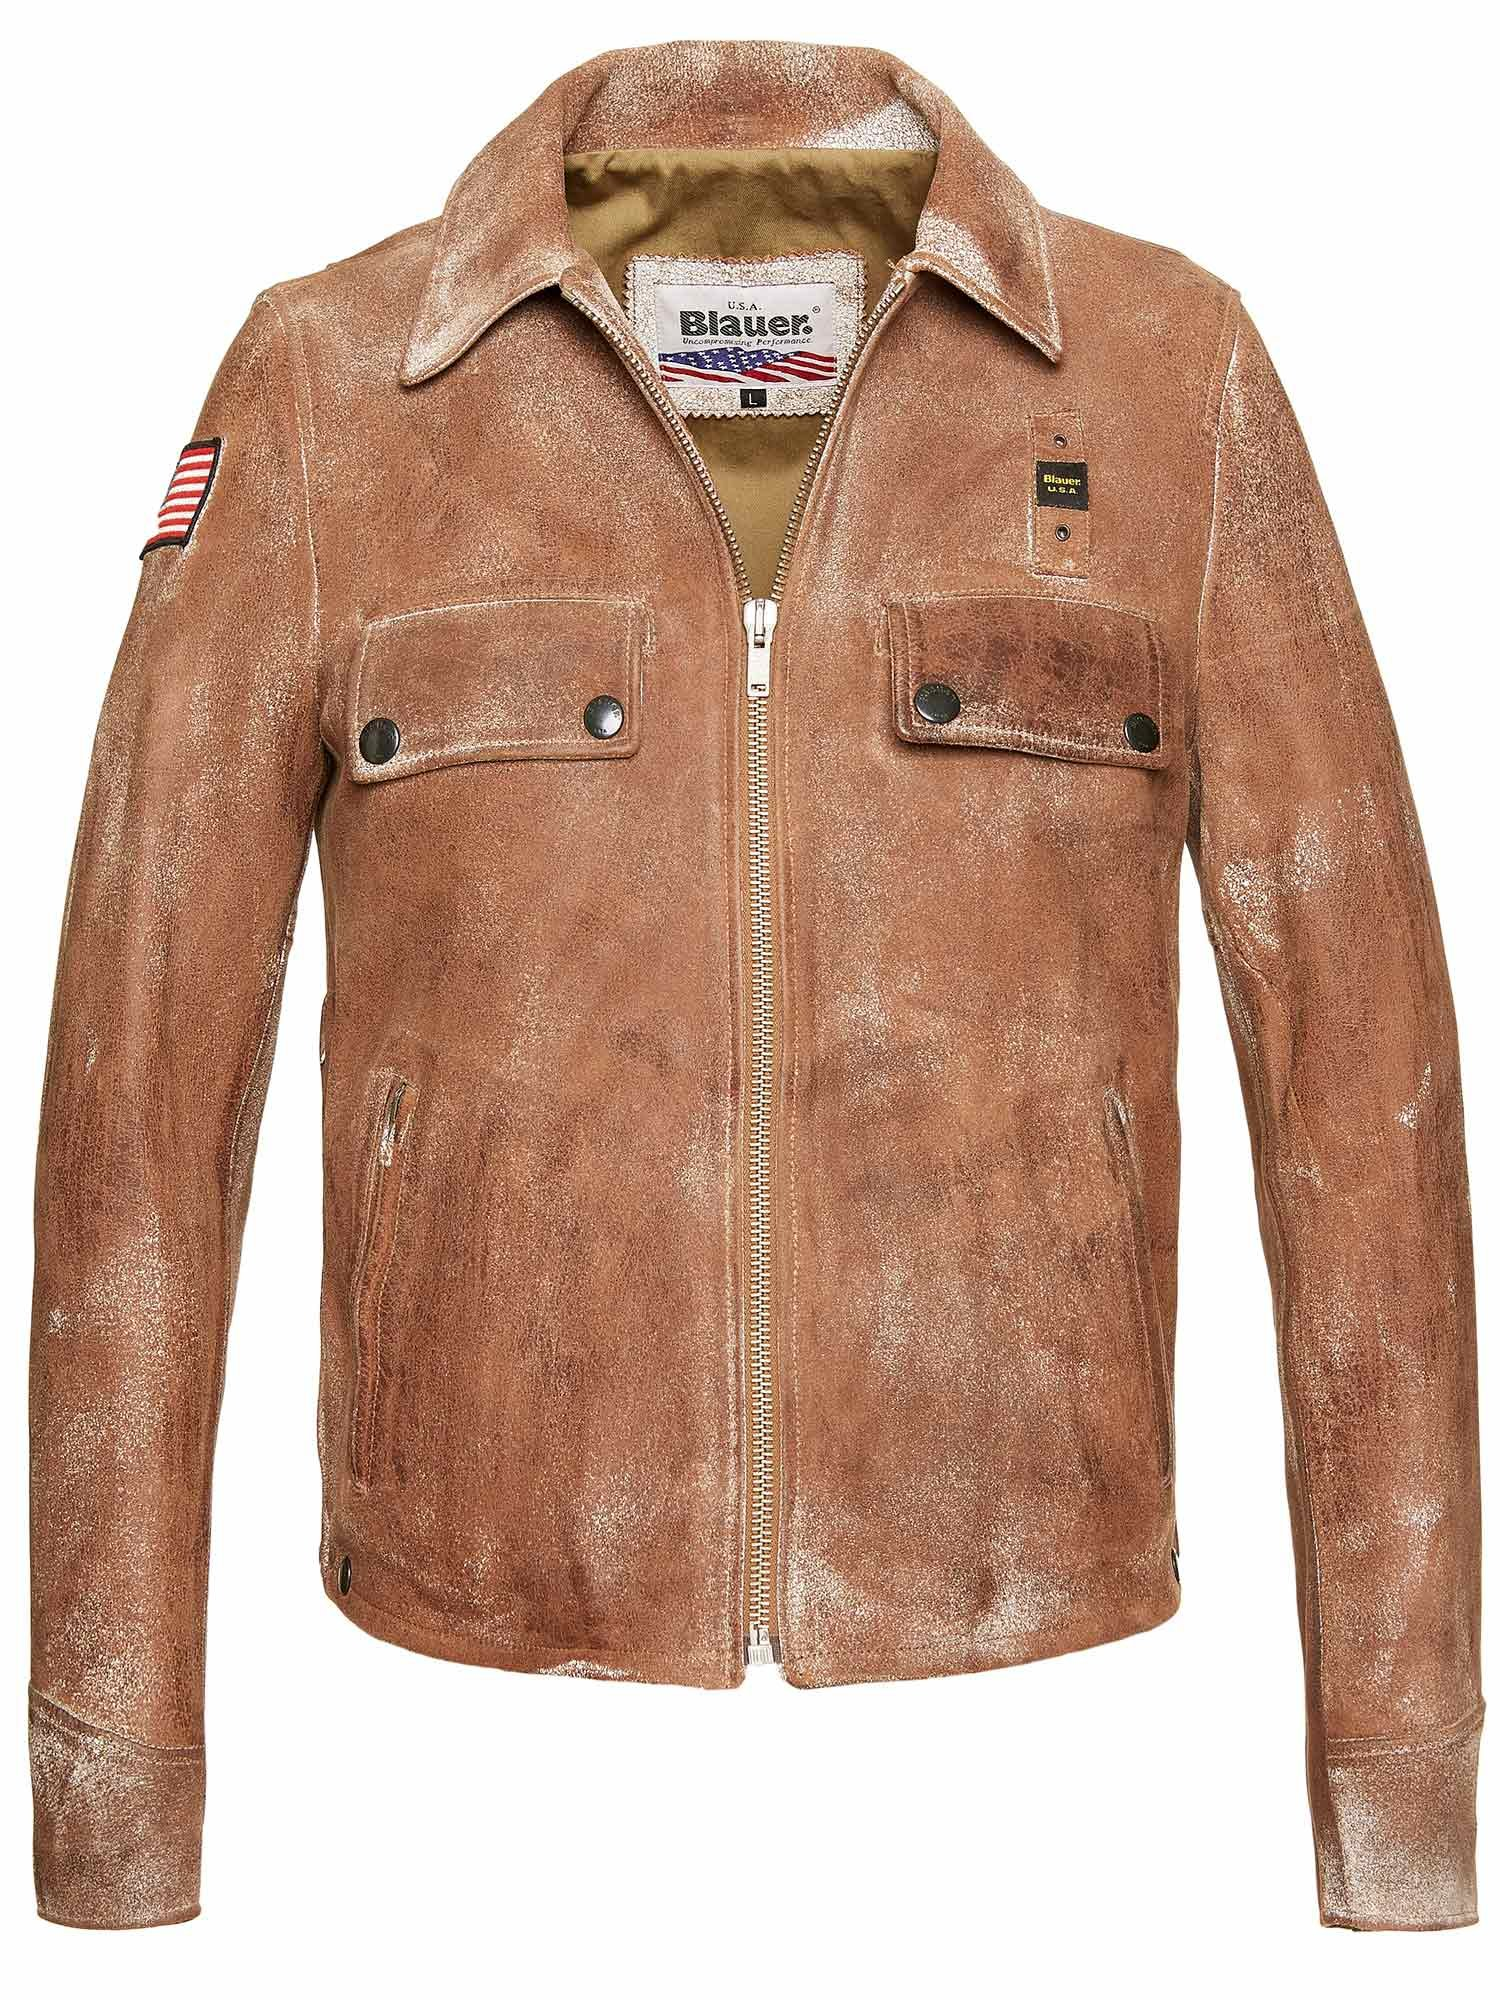 TYLER VINTAGE LEATHER JACKET - Blauer